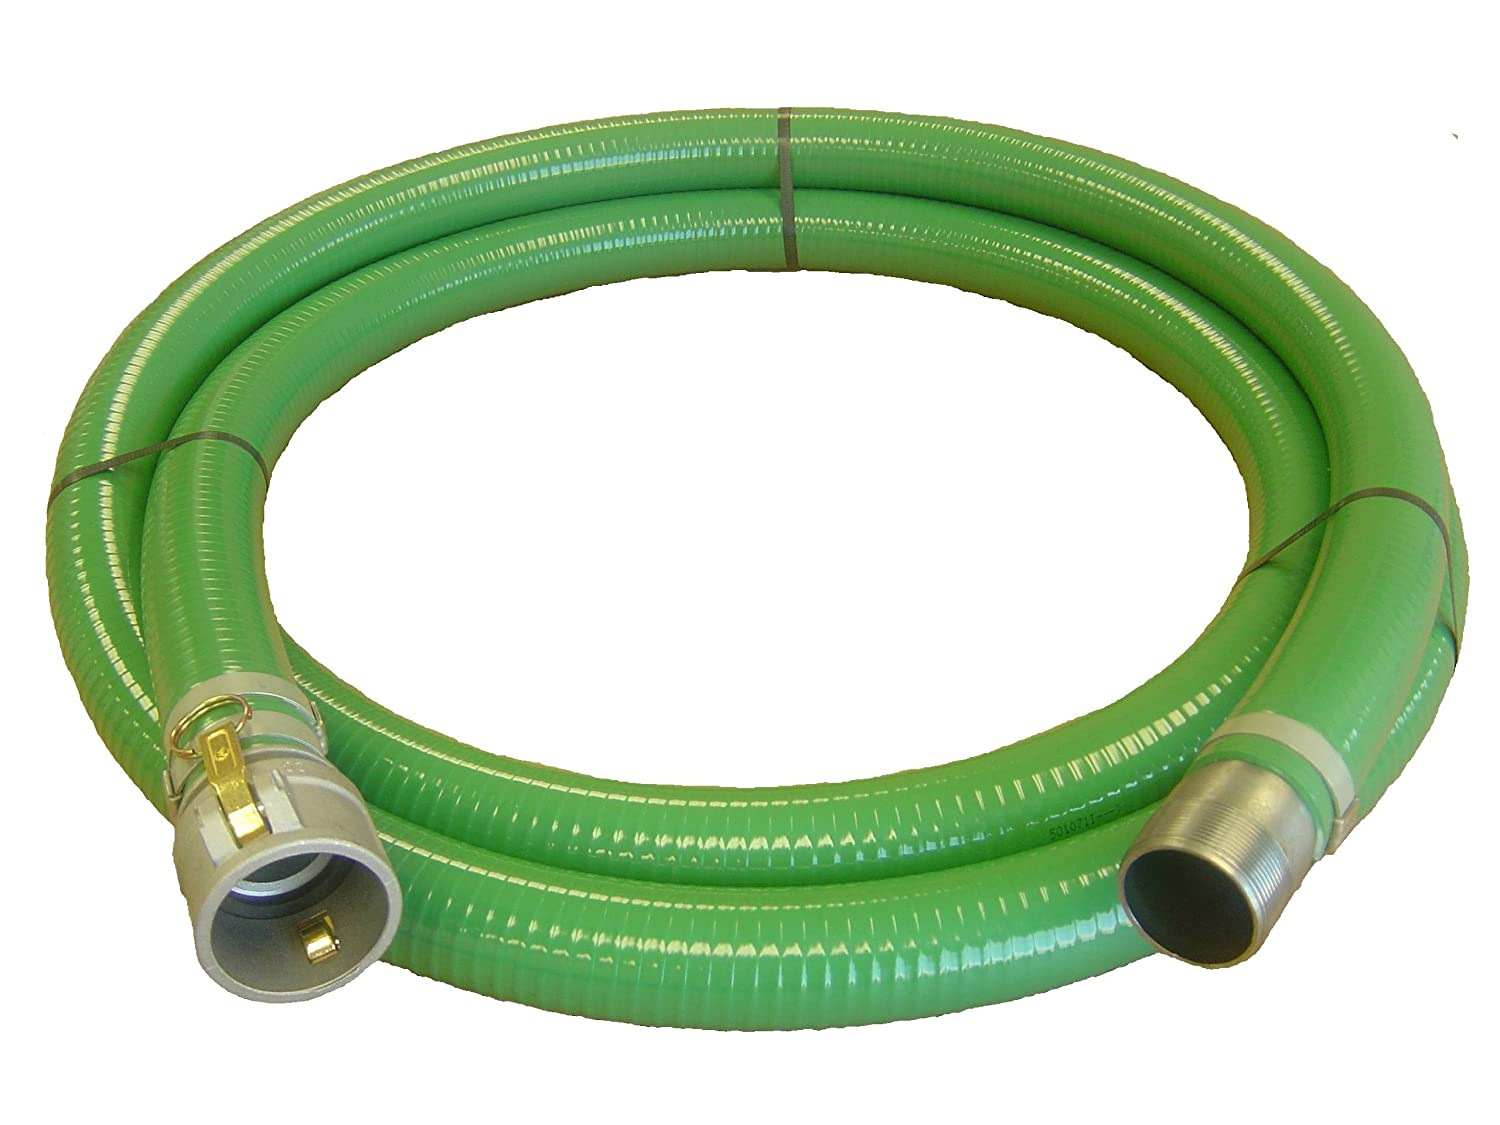 65 psi Max Pressure 2 Female Cam and Groove X Male NPT Abbott Rubber PVC Suction Hose Assembly Green 20 Length 2 ID